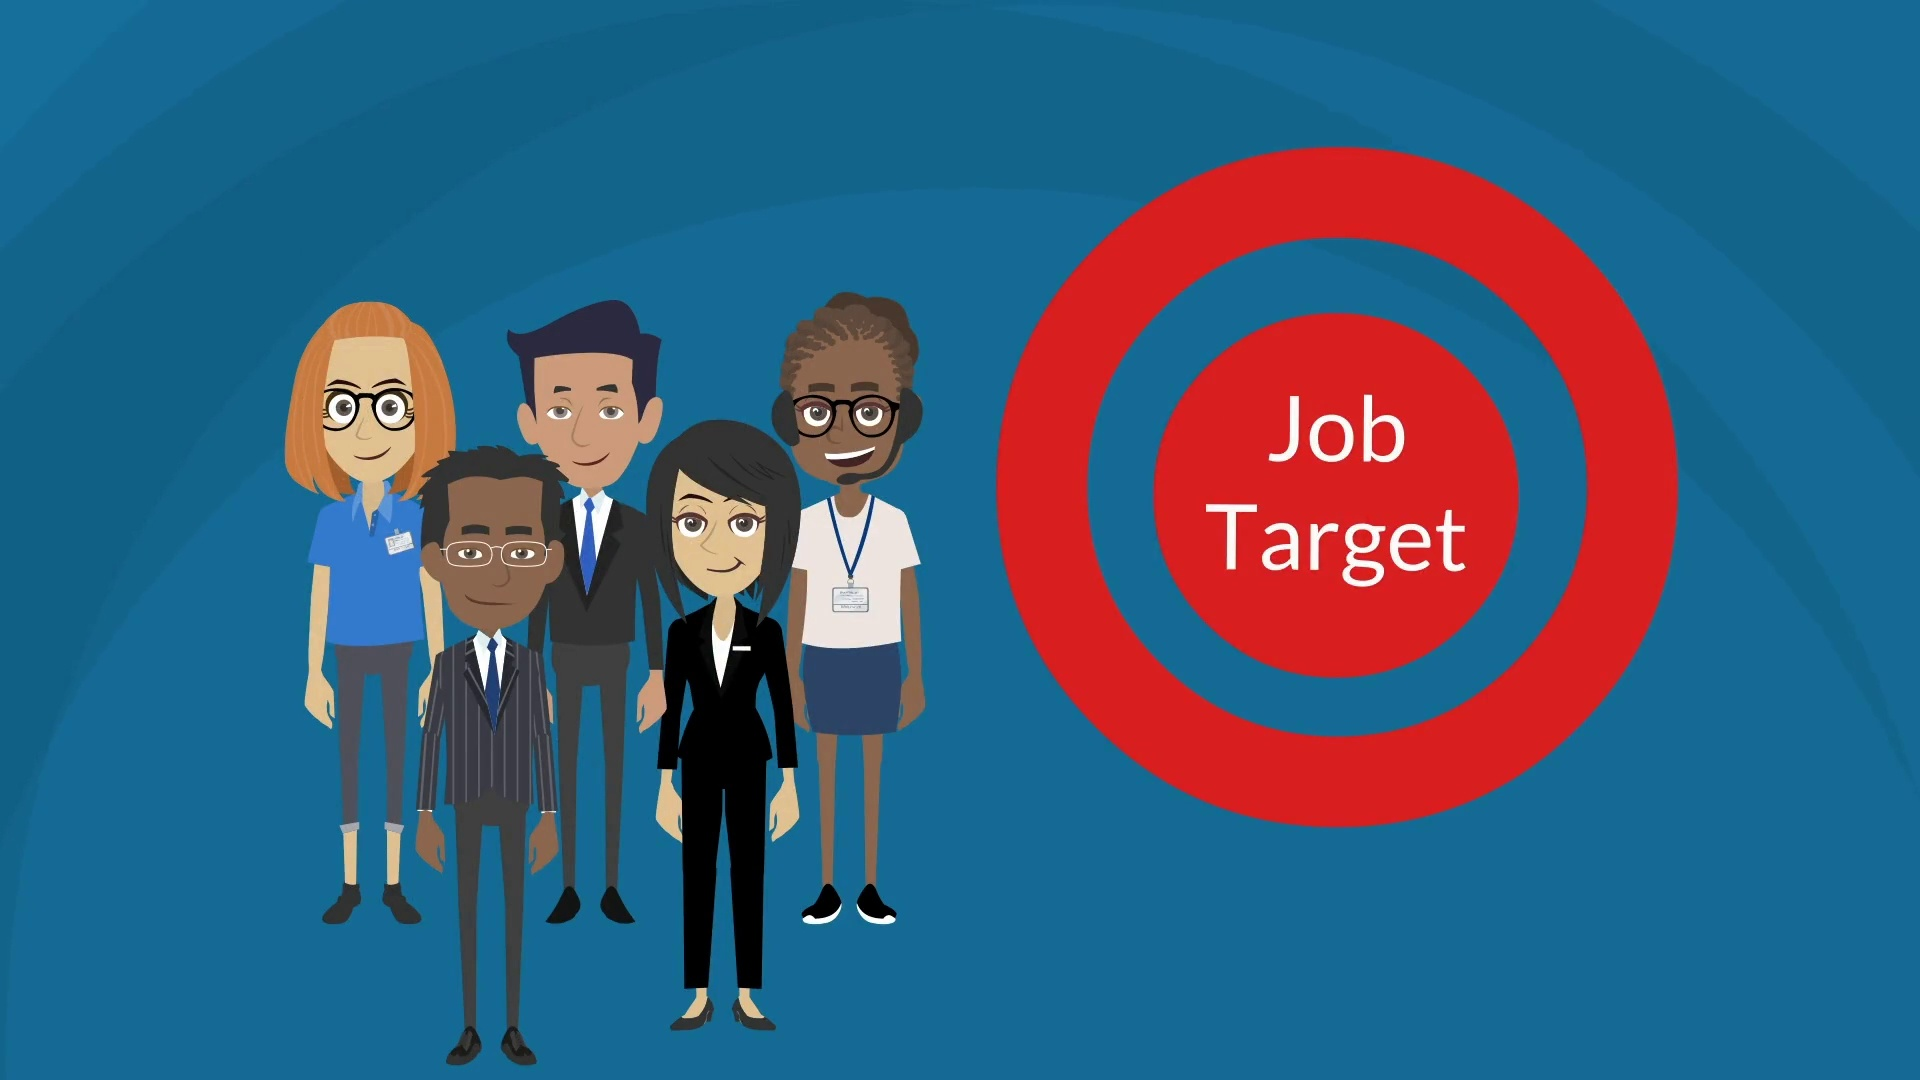 Creating Jobs and Job Targets Power Up